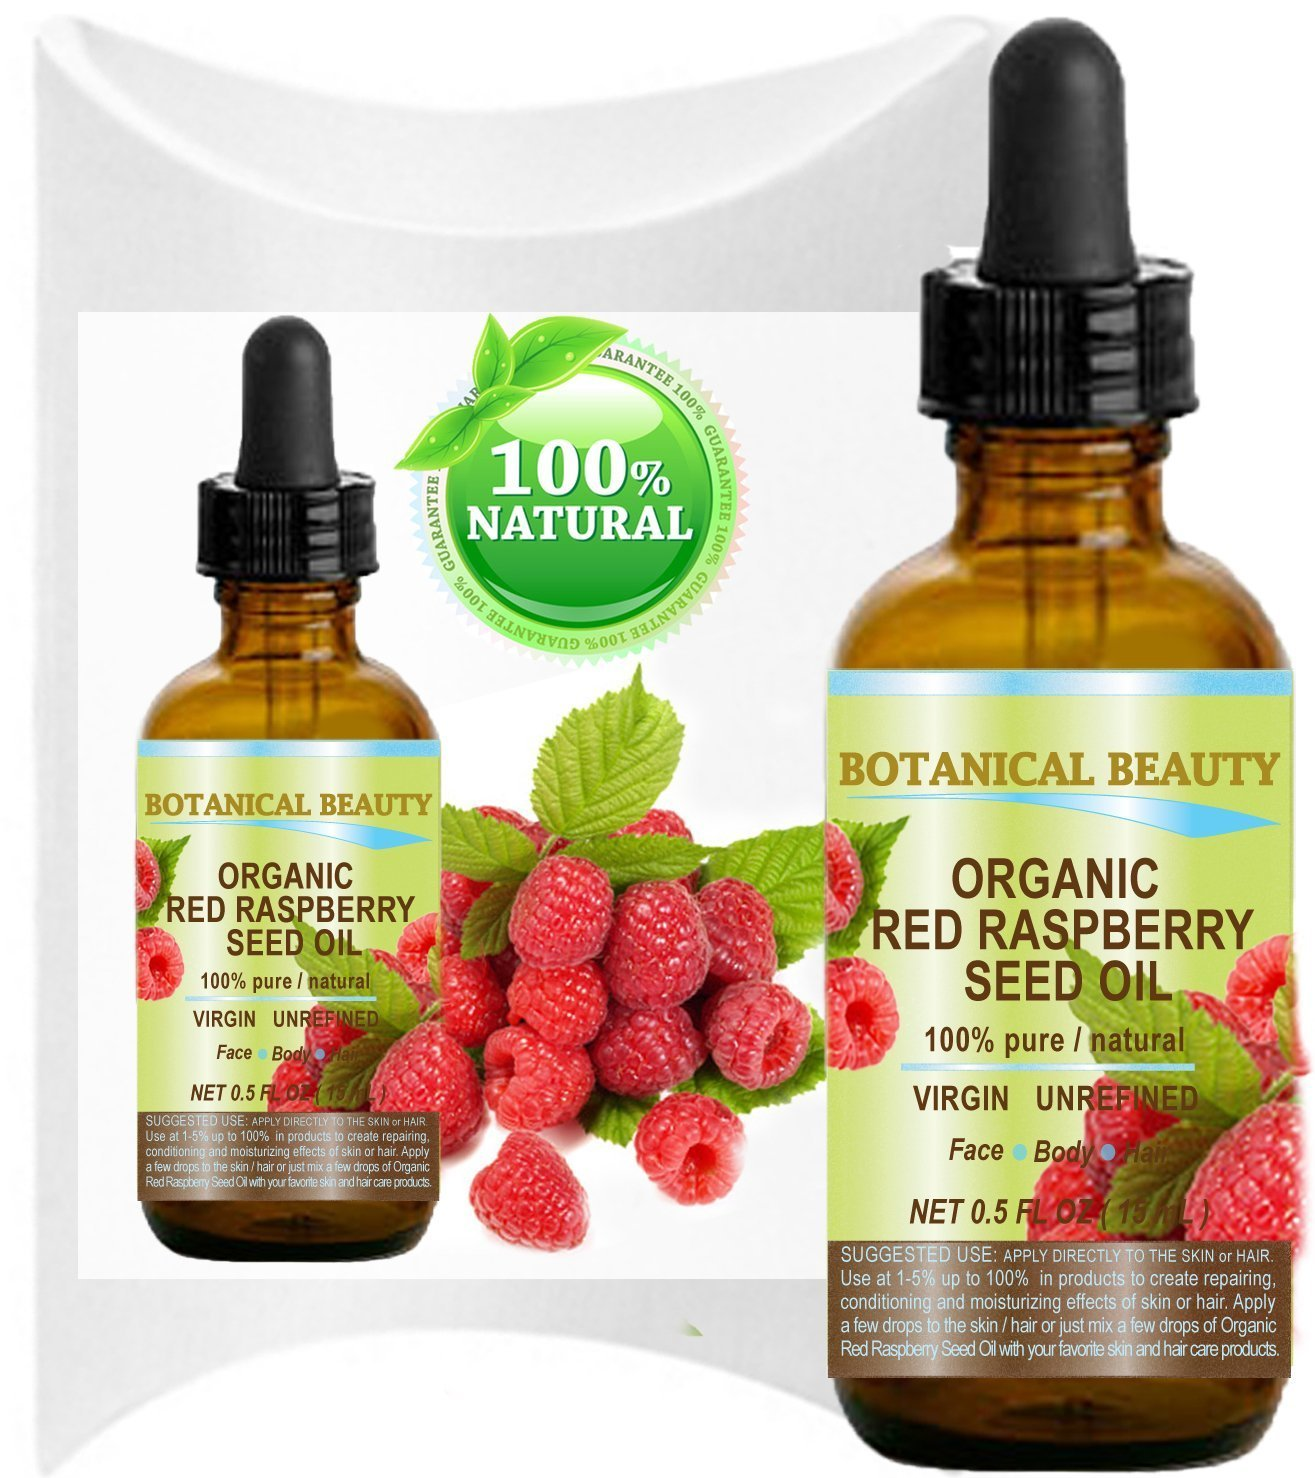 Botanical Beauty Organic Red Raspberry Seed Oil for Face, Body and Hair, 0.5 Fl.oz